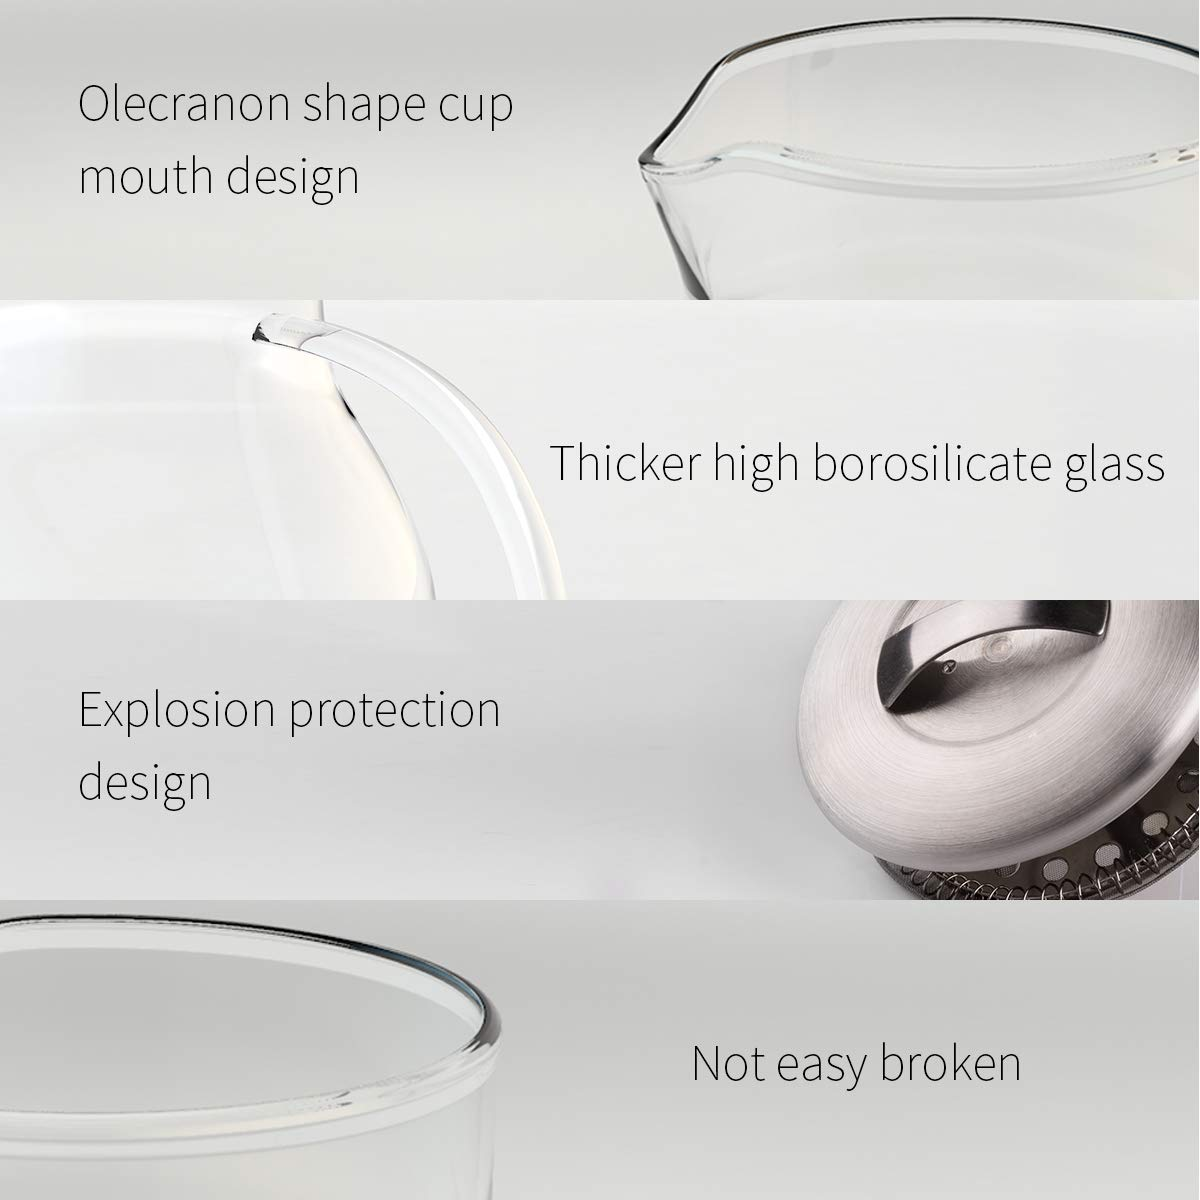 Morpilot 1800ml Glass Teapot with Removable Infuser Glass Carafe, Stovetop Safe Tea Kettle,Water Tank Heat Resistant Borosilicate for Tea,Coffee,Juice,and Water